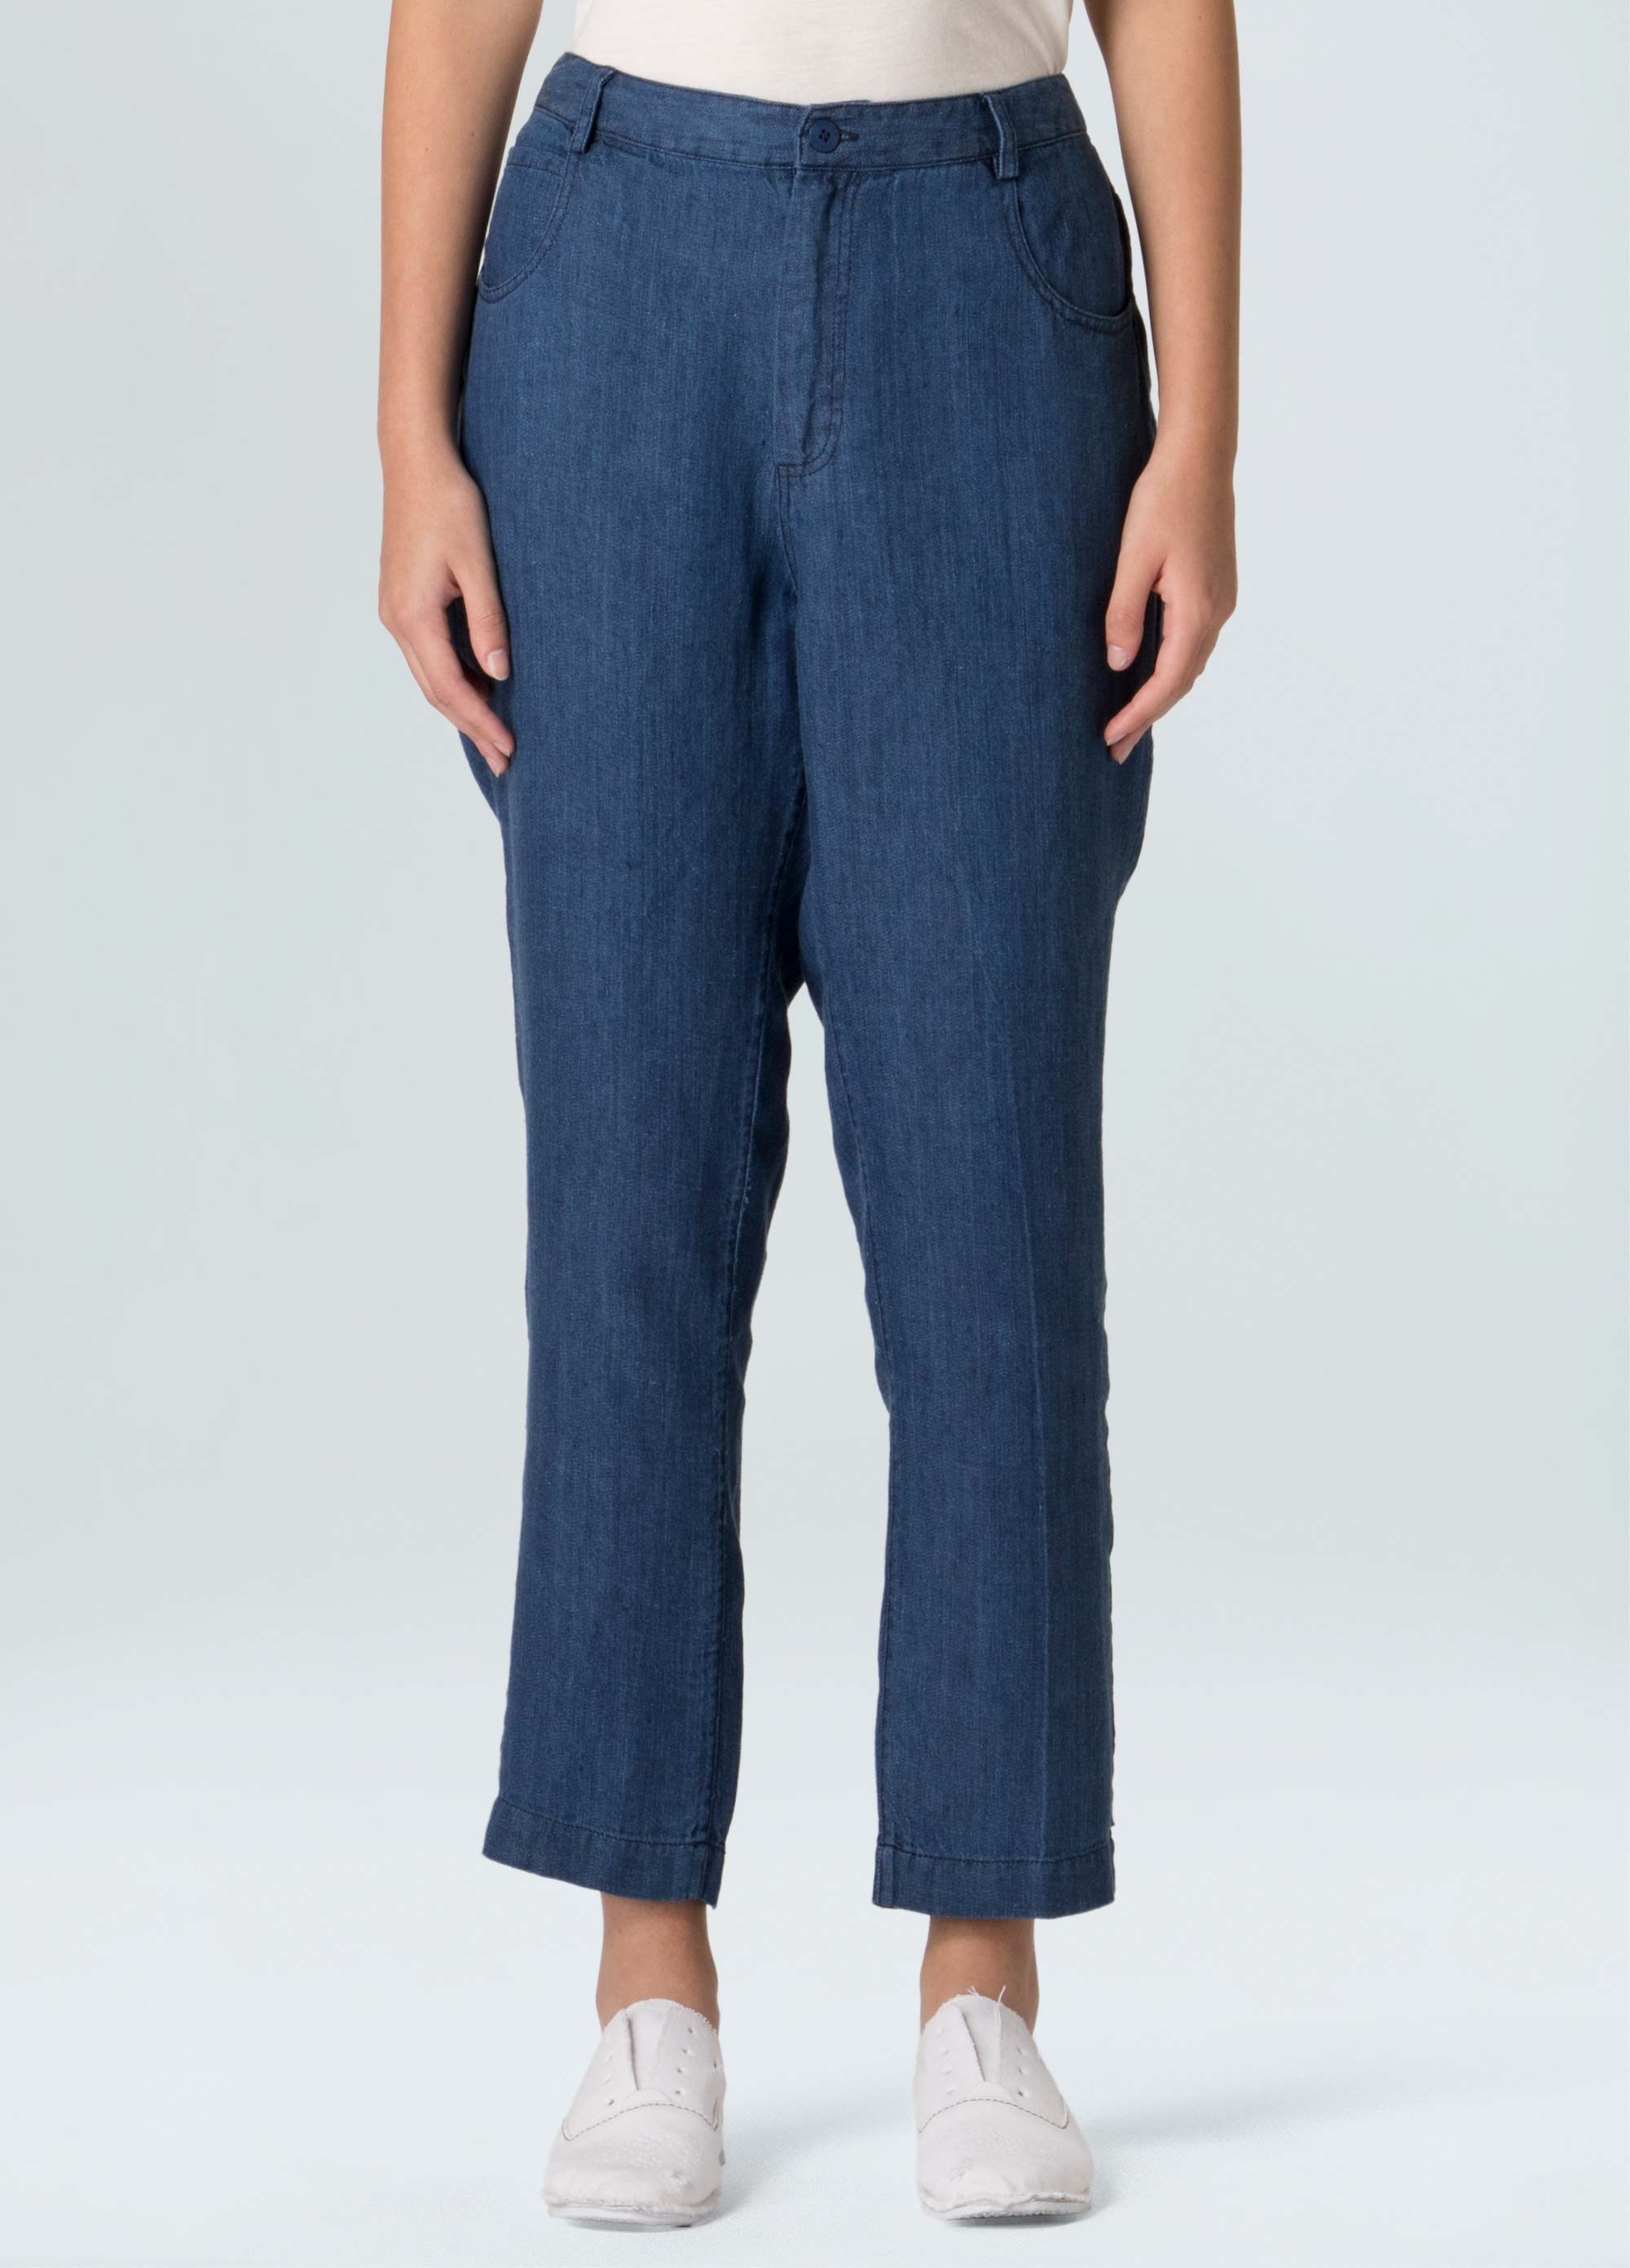 Women's Crop Linen Pants